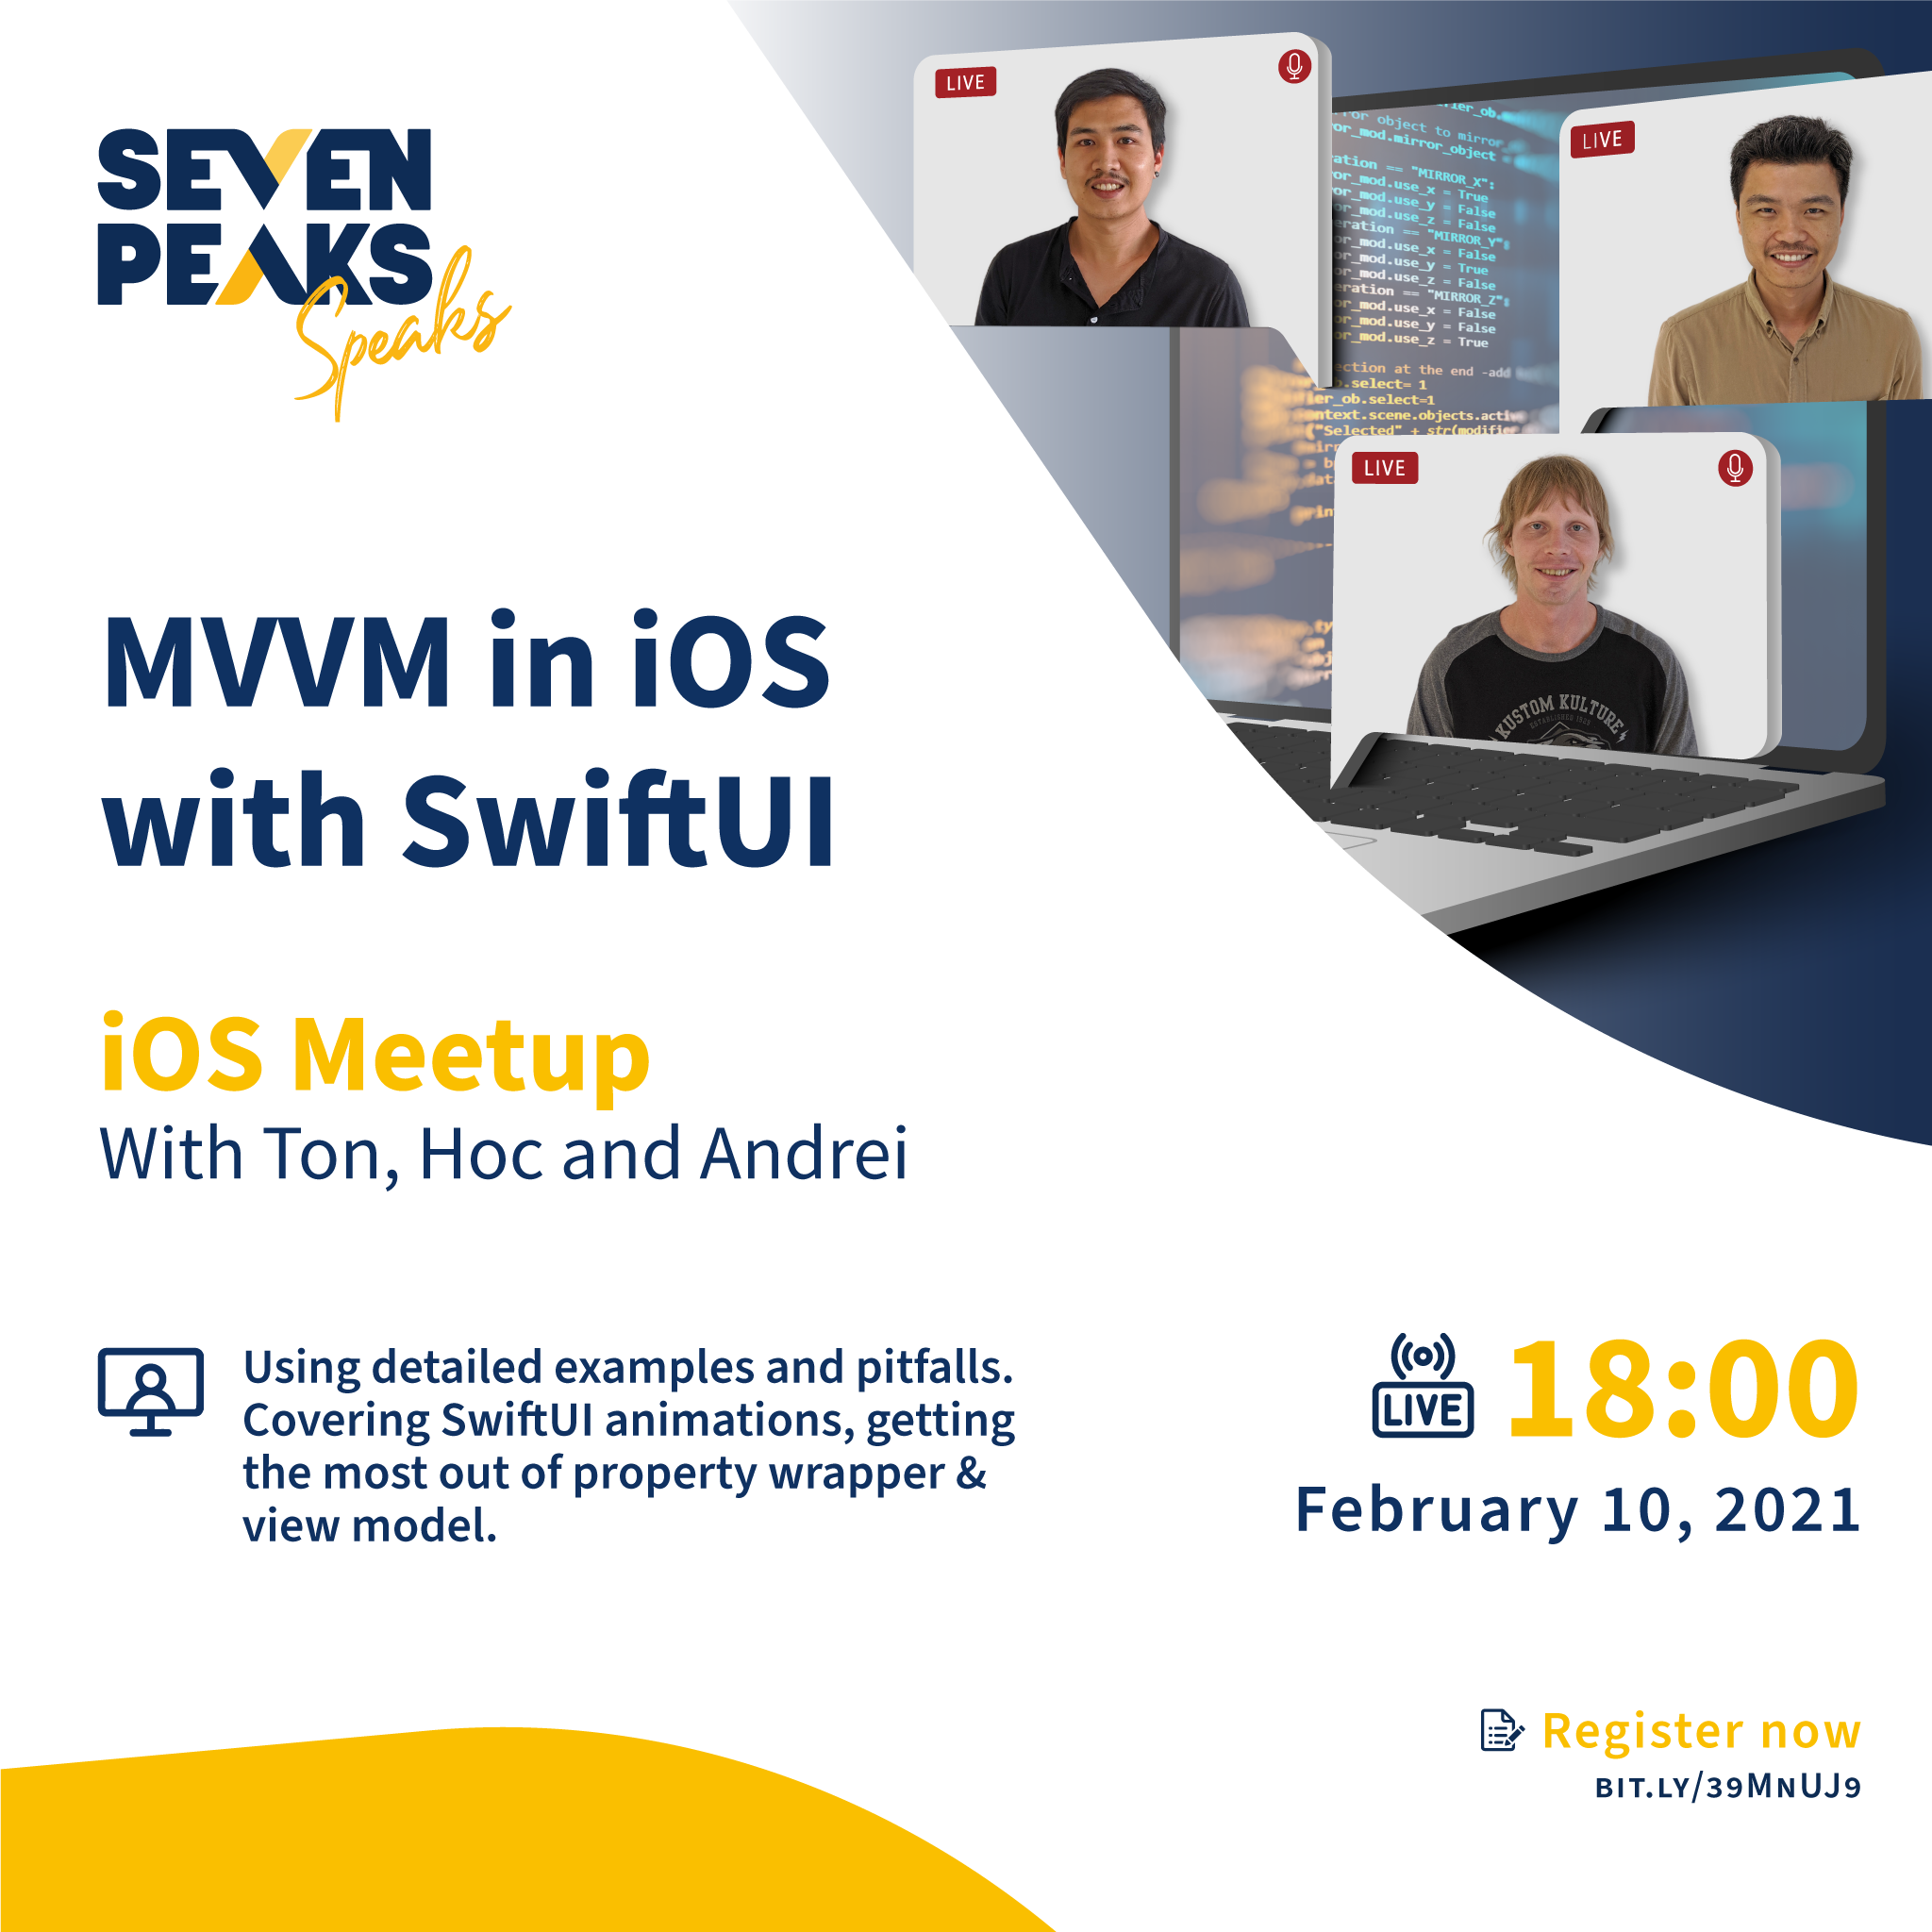 MVVM in iOS with SwiftUI: Detailed examples and pitfalls you should know